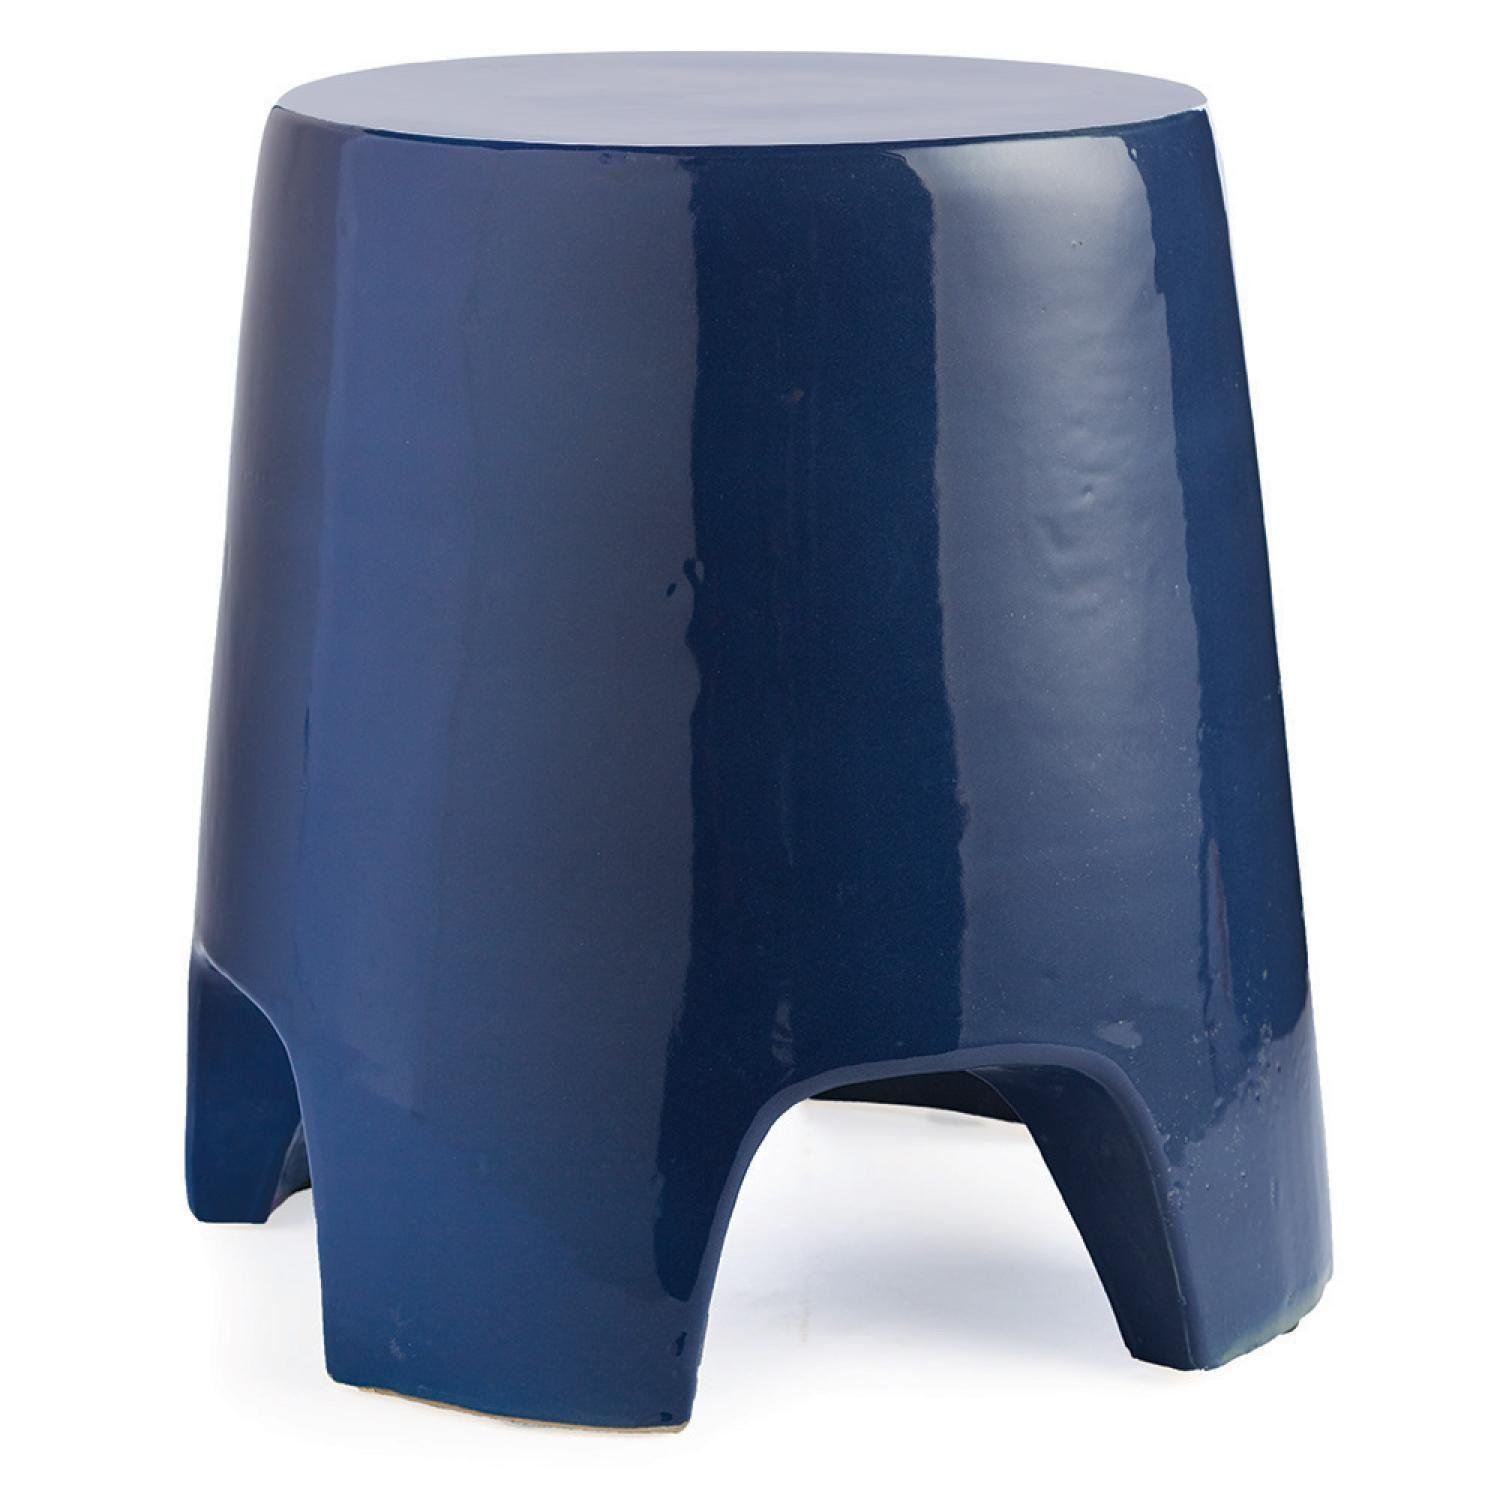 "18.5"" Versatile Uniquely Shaped Striking Royal Blue Indoor Stool"